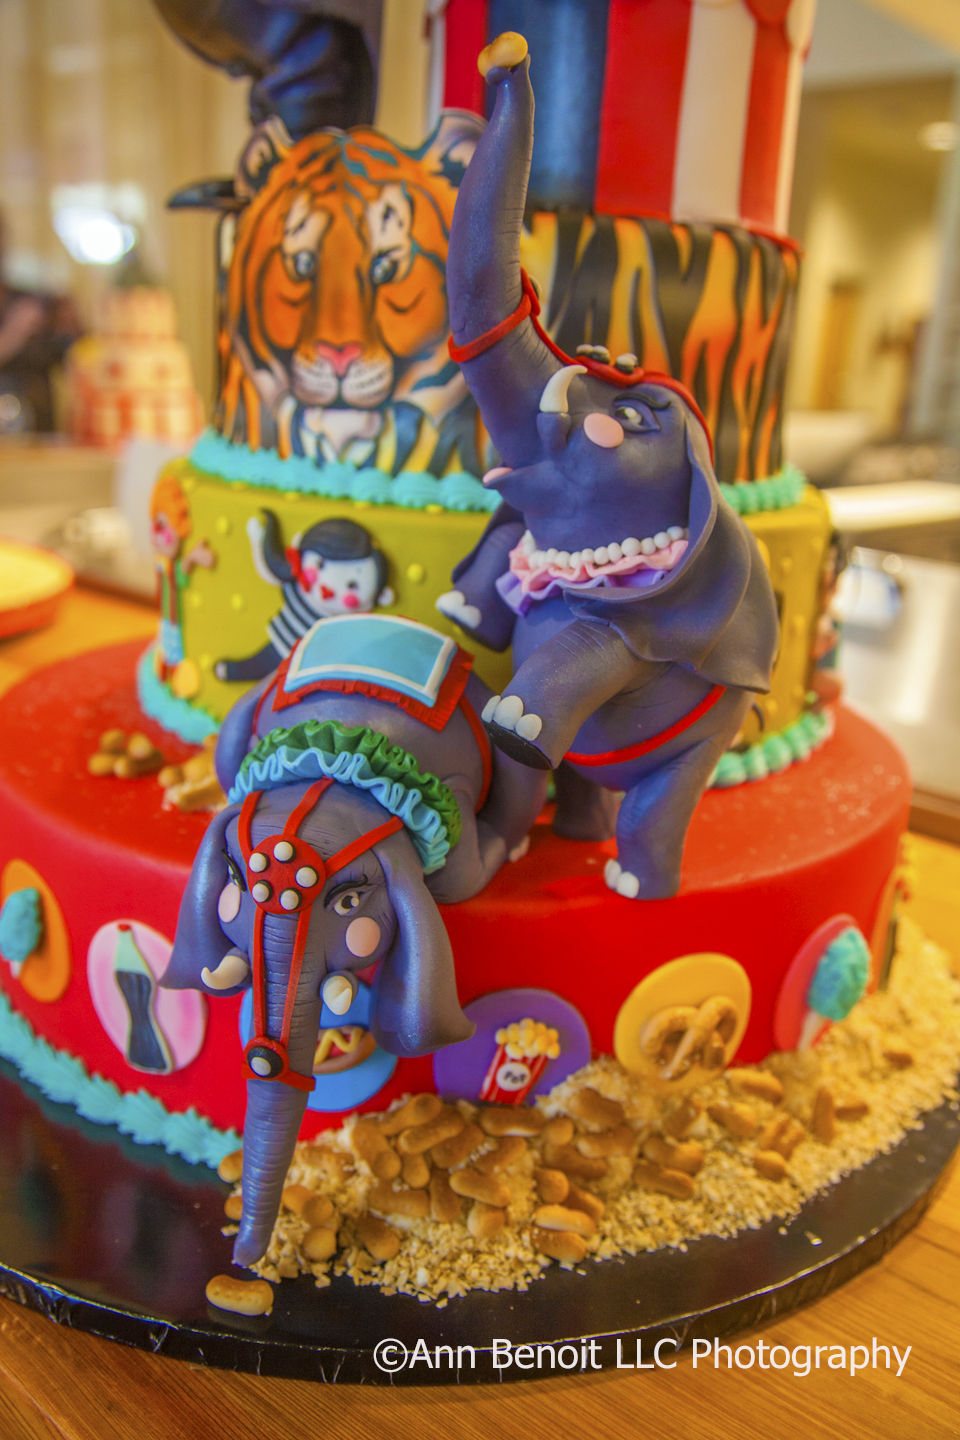 Big Top Cake Competition hits New Orleans New Orleans Best Ethnic